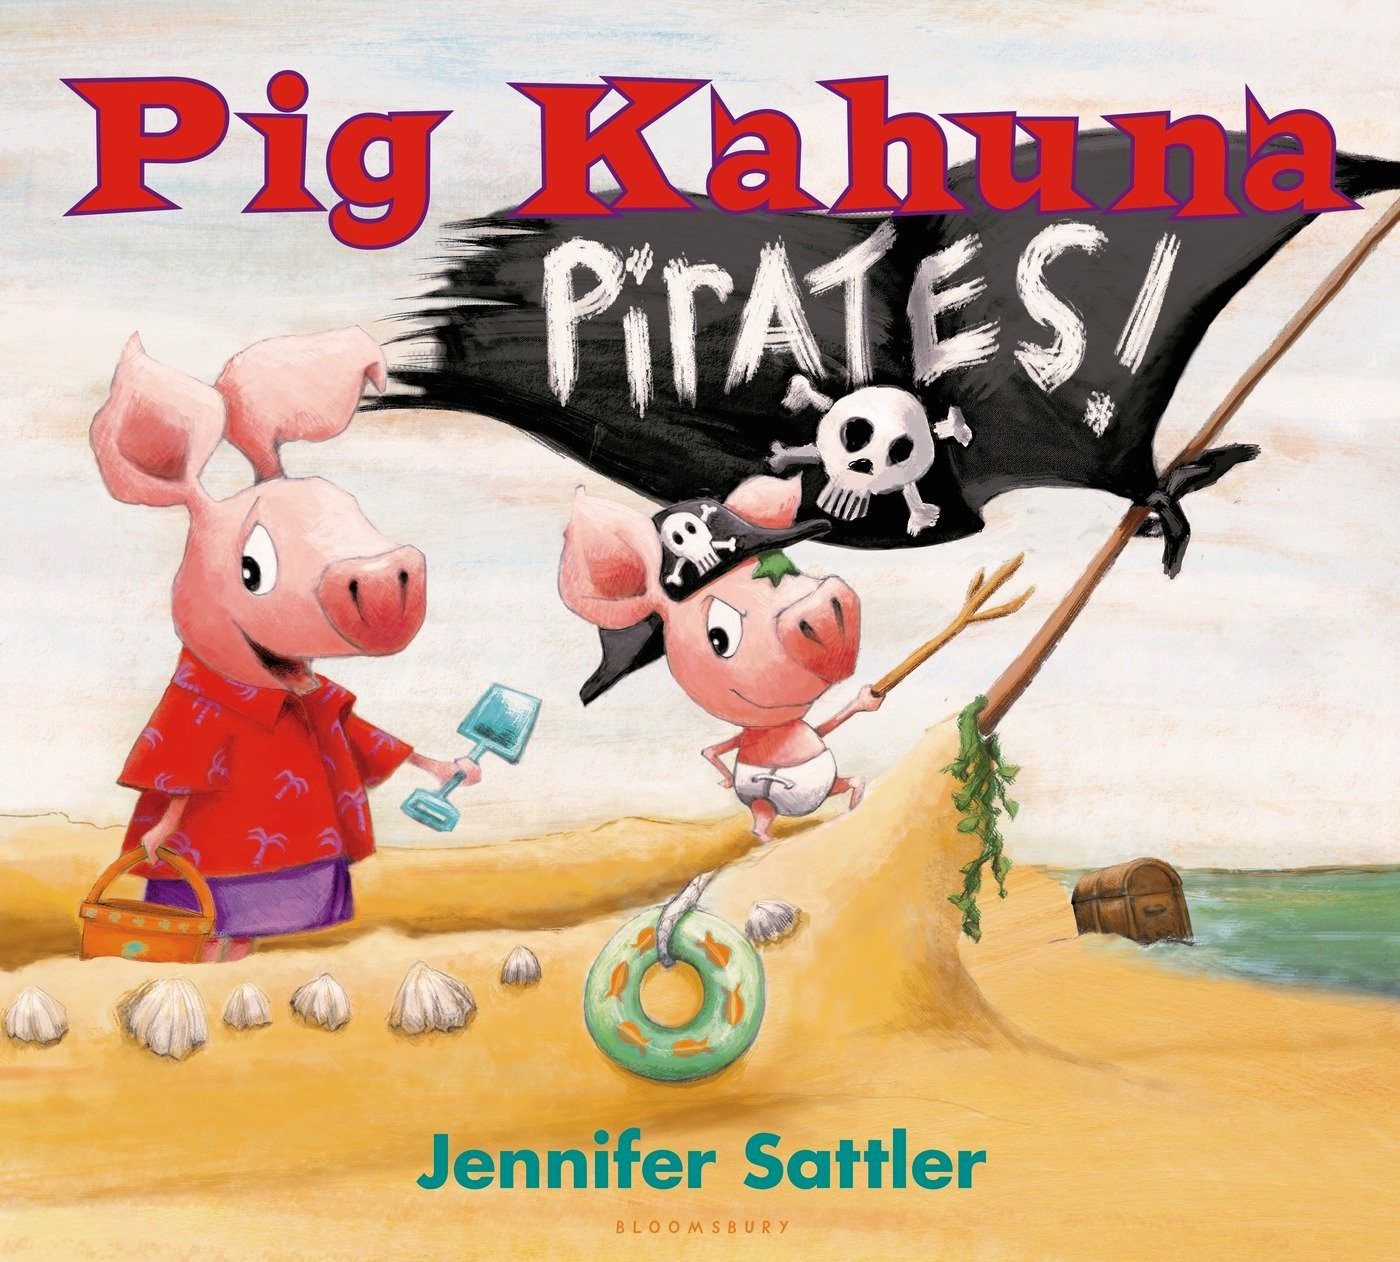 Pig Kahuna Pirates! by Jennifer Sattler, included in a book review list of ocean books for preschoolers